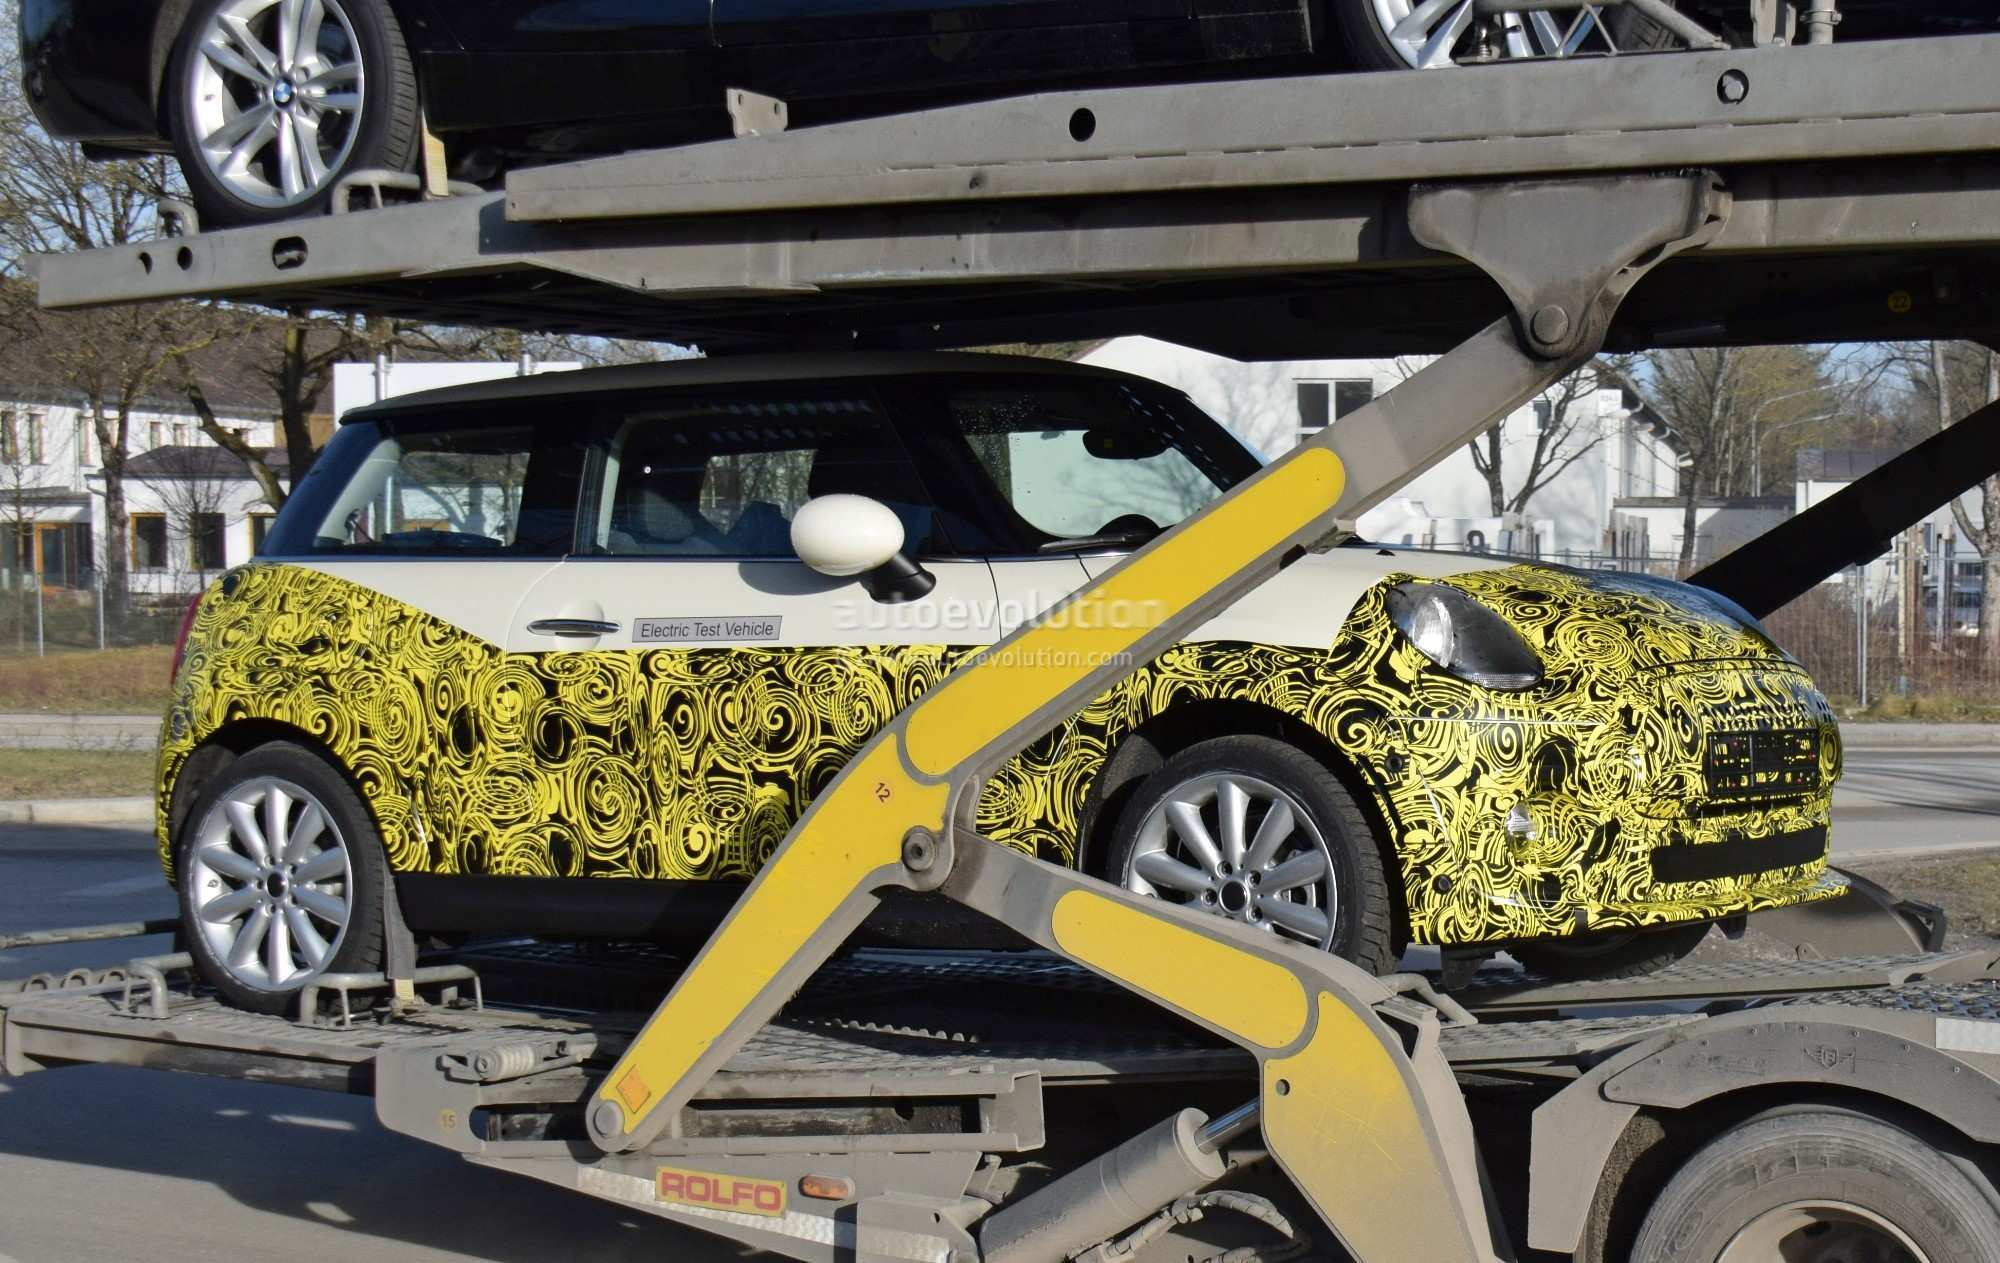 77 All New 2019 Mini Cooper Spy Shots Price Design and Review